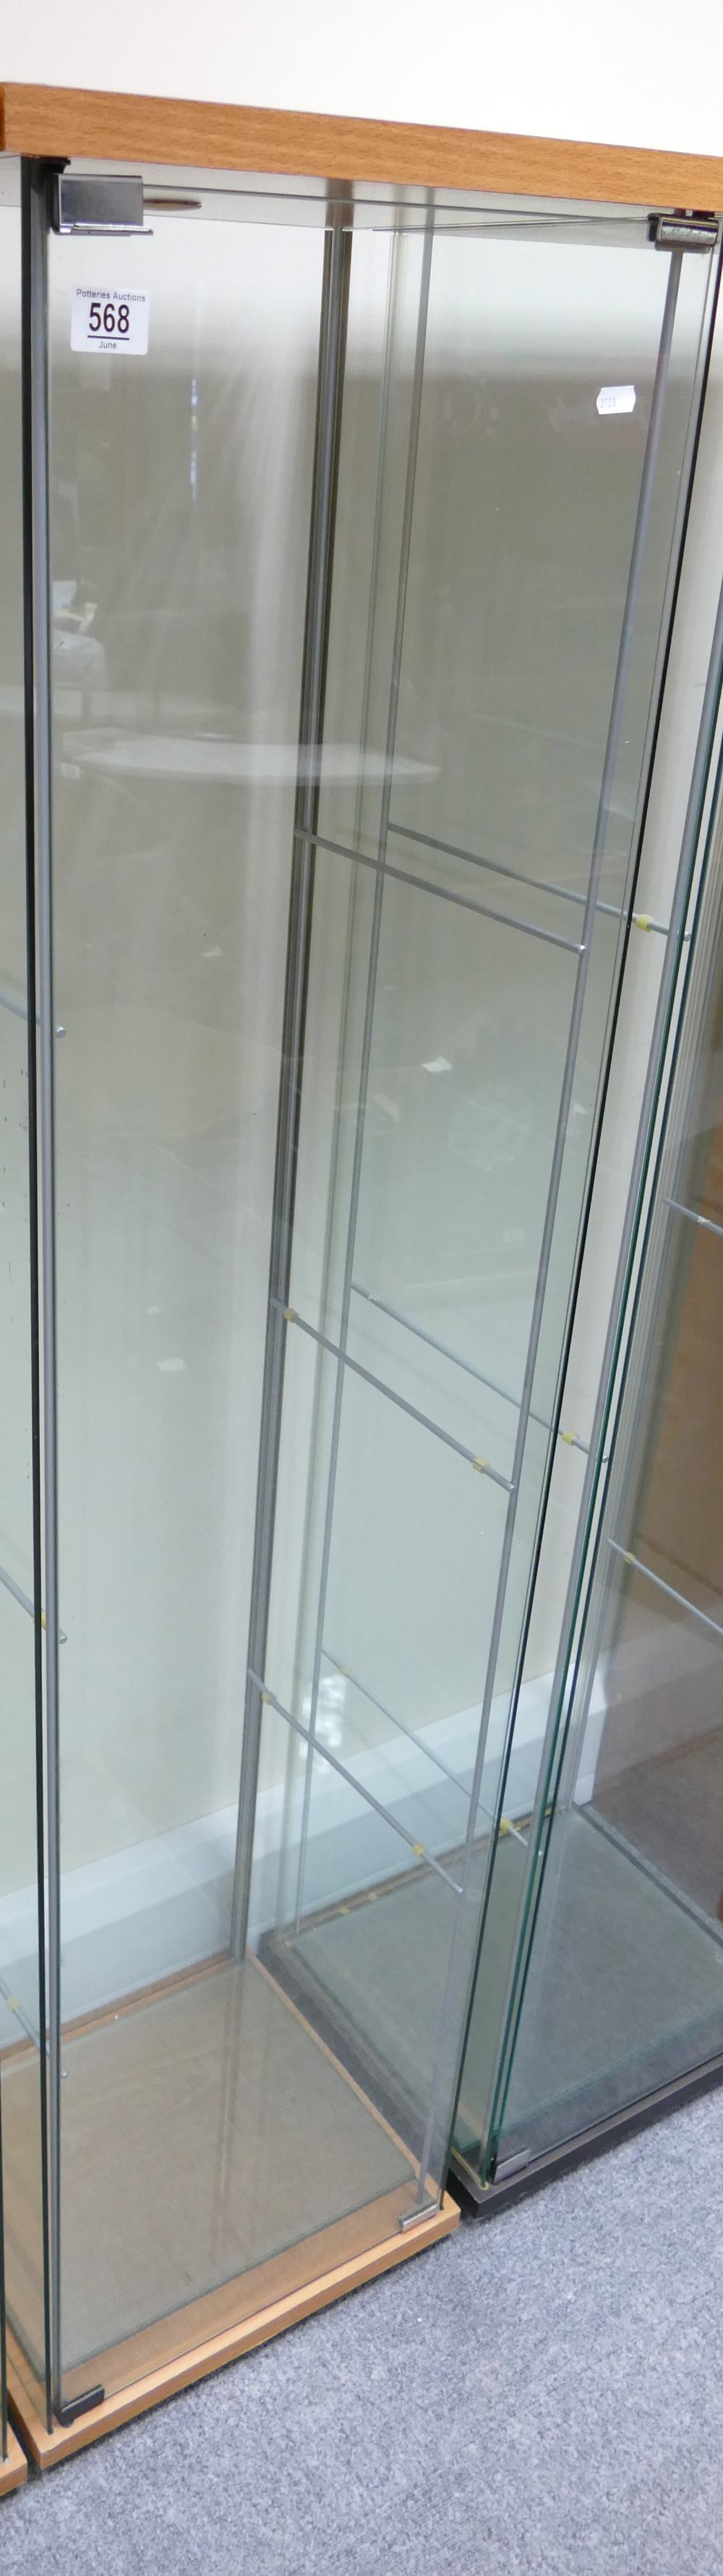 Modern Showroom Display Cabinets: height 162cm, depth 37cm and width 43cm